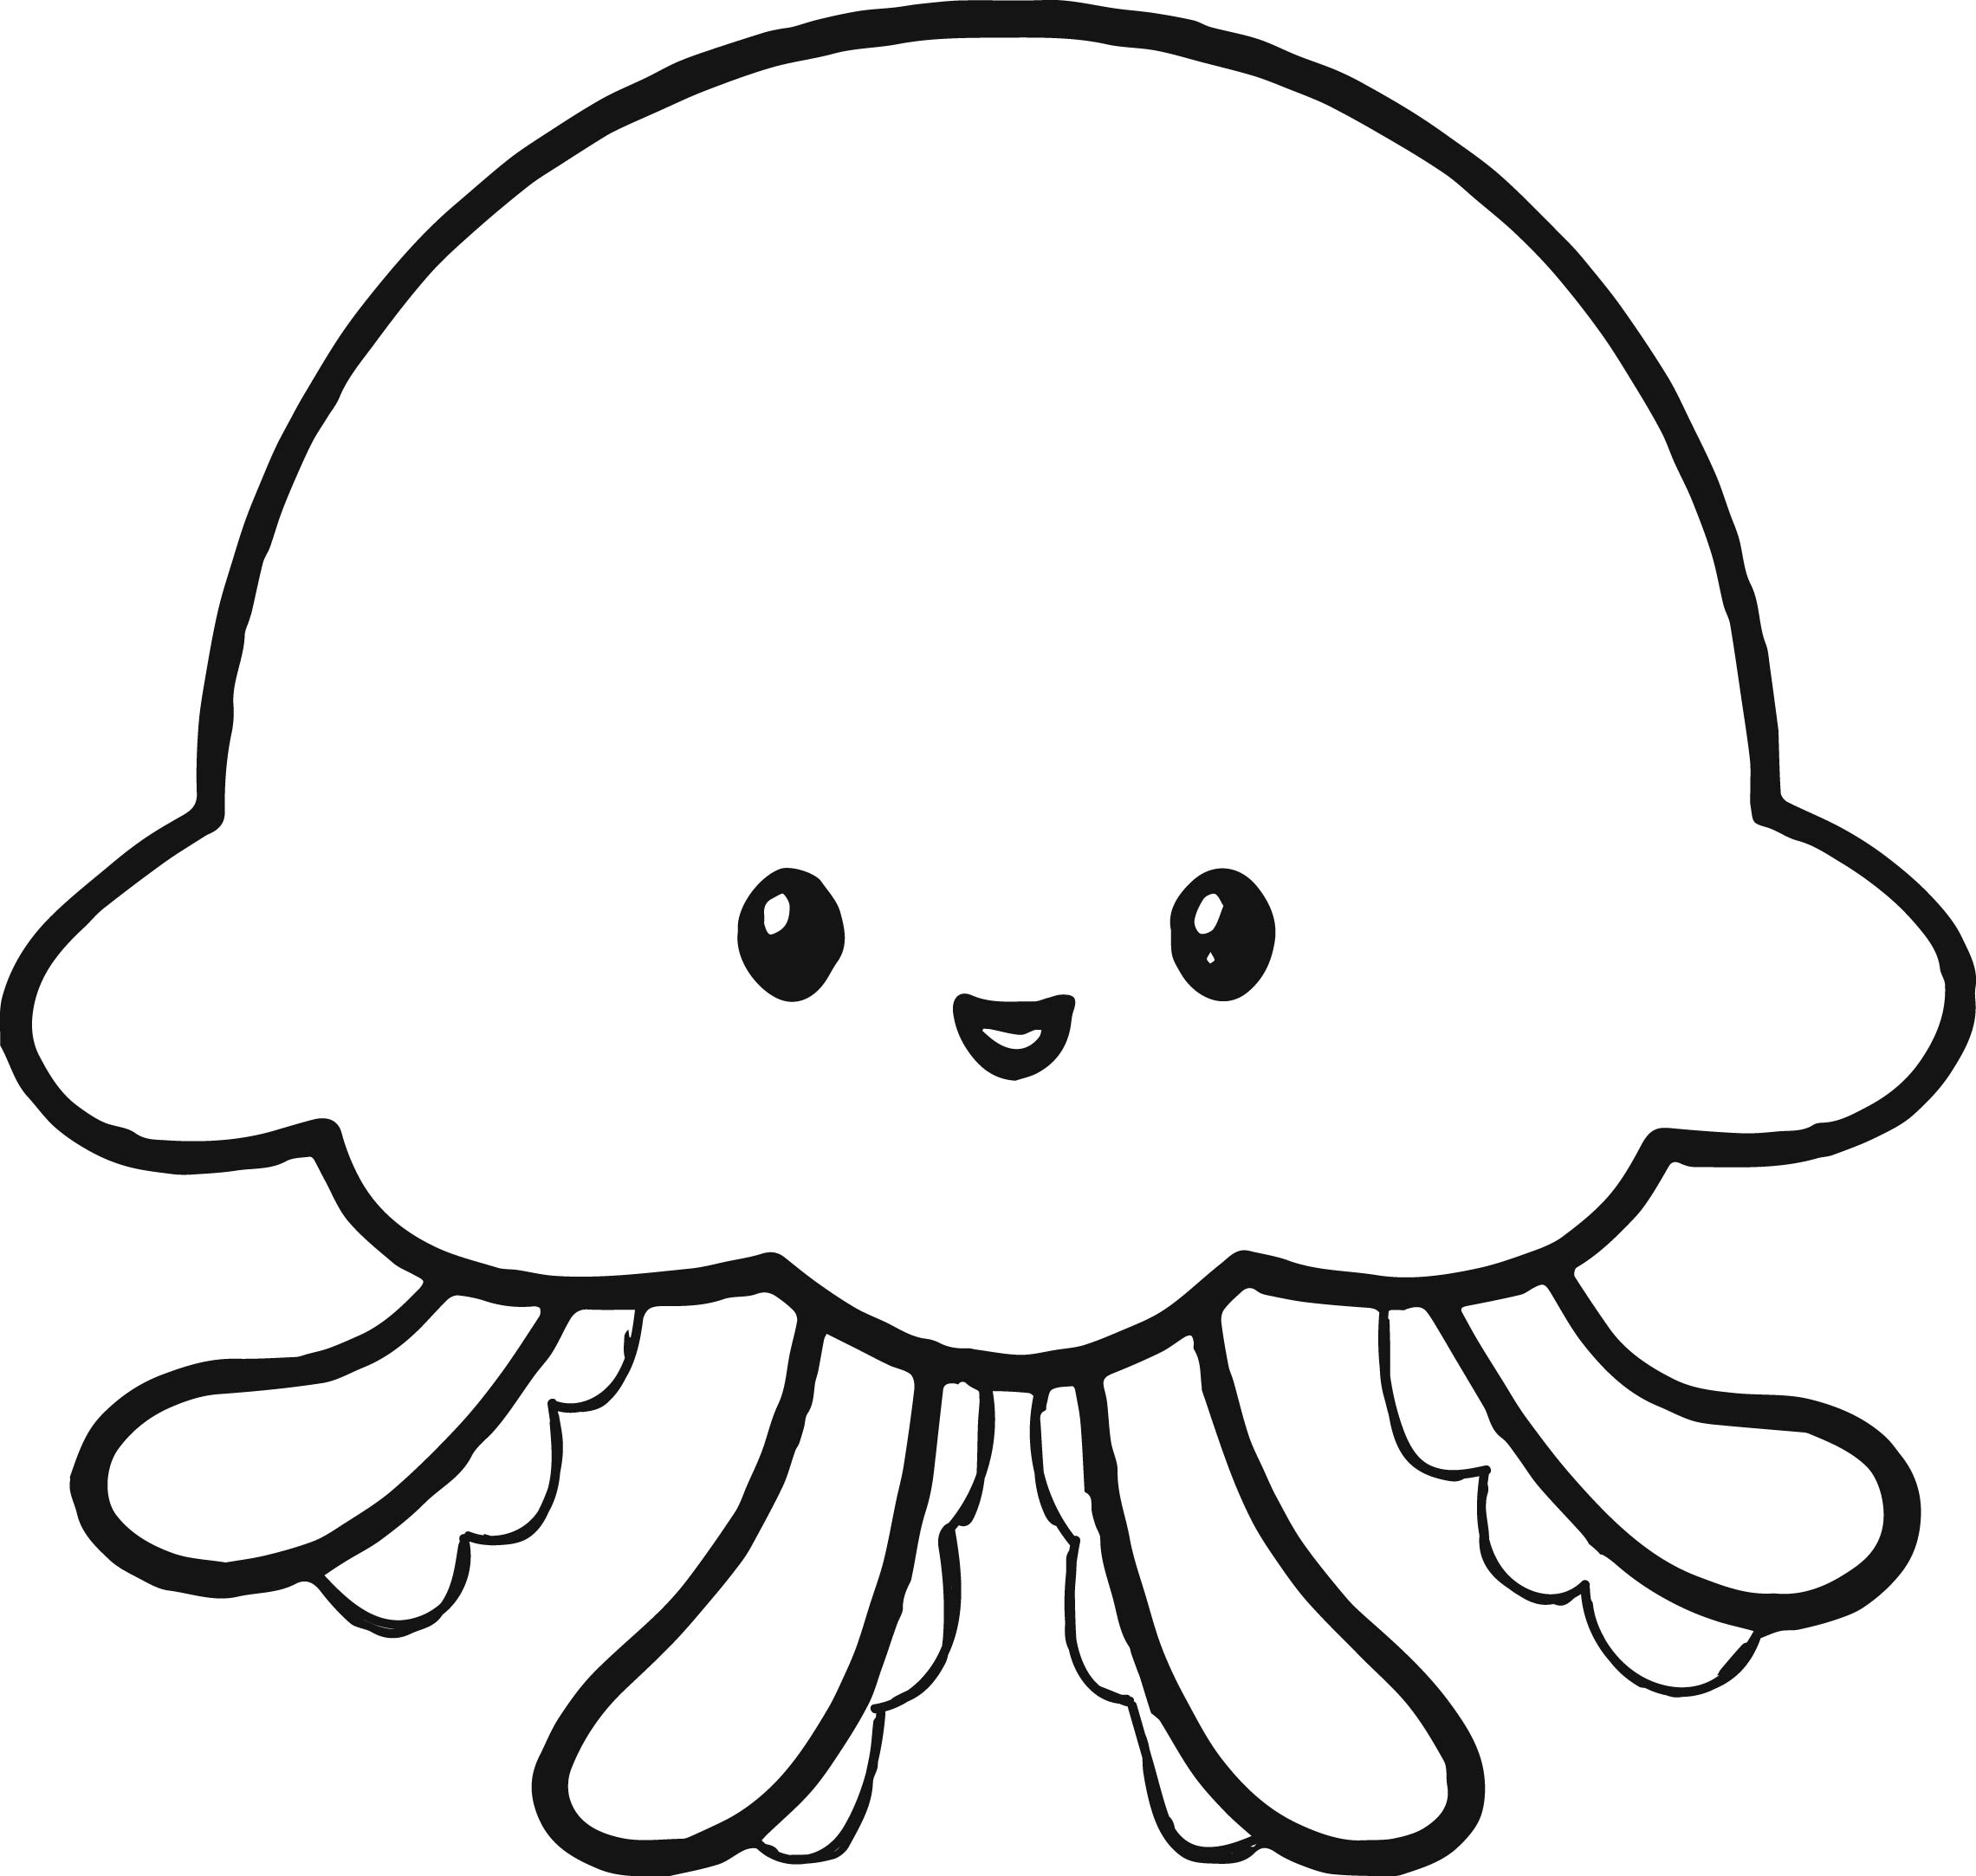 Jellyfish Clipart Black And White